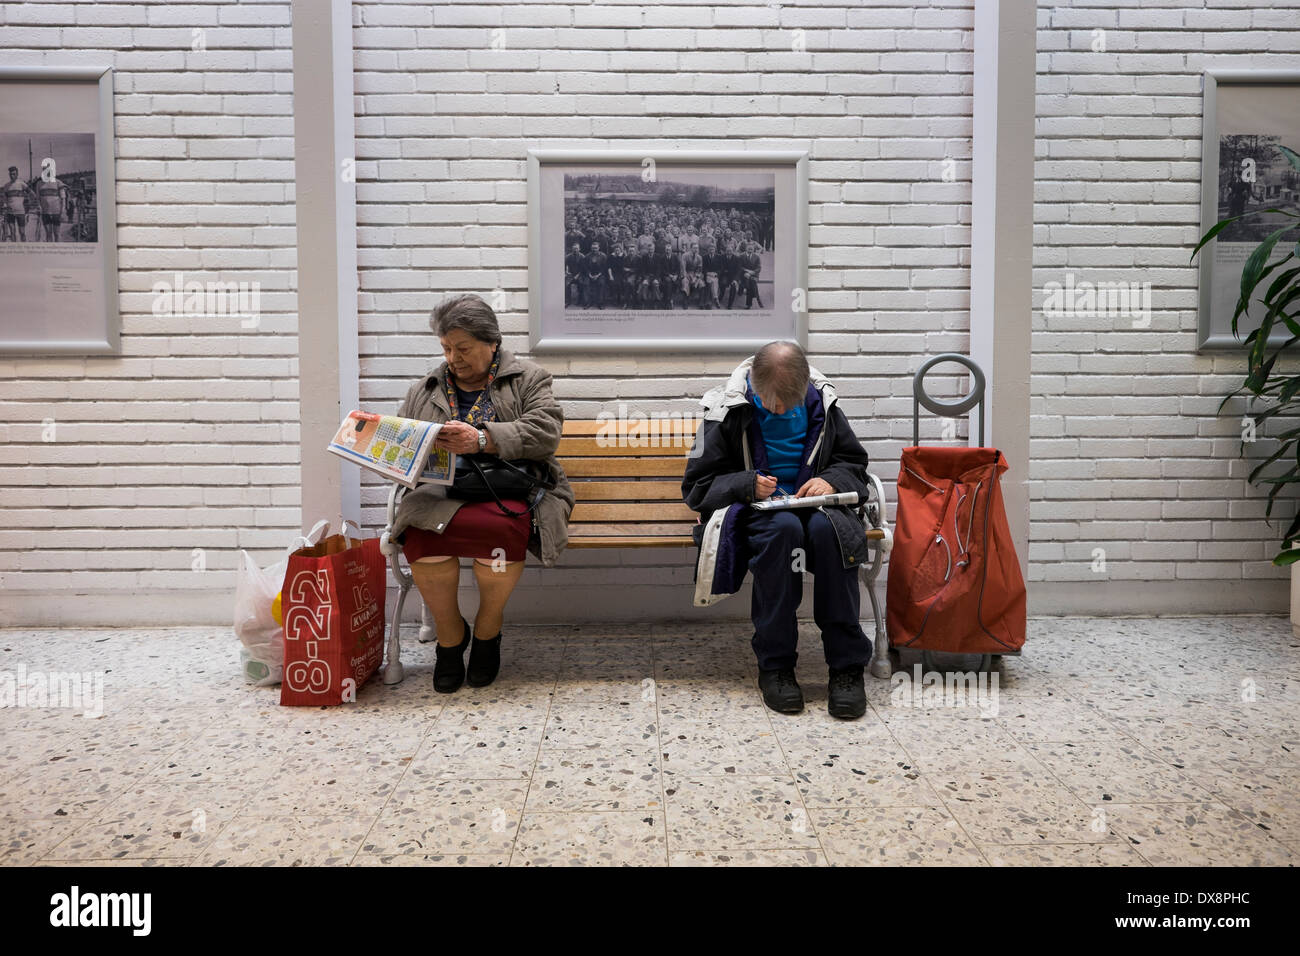 Two women reading a newspaper - Stock Image